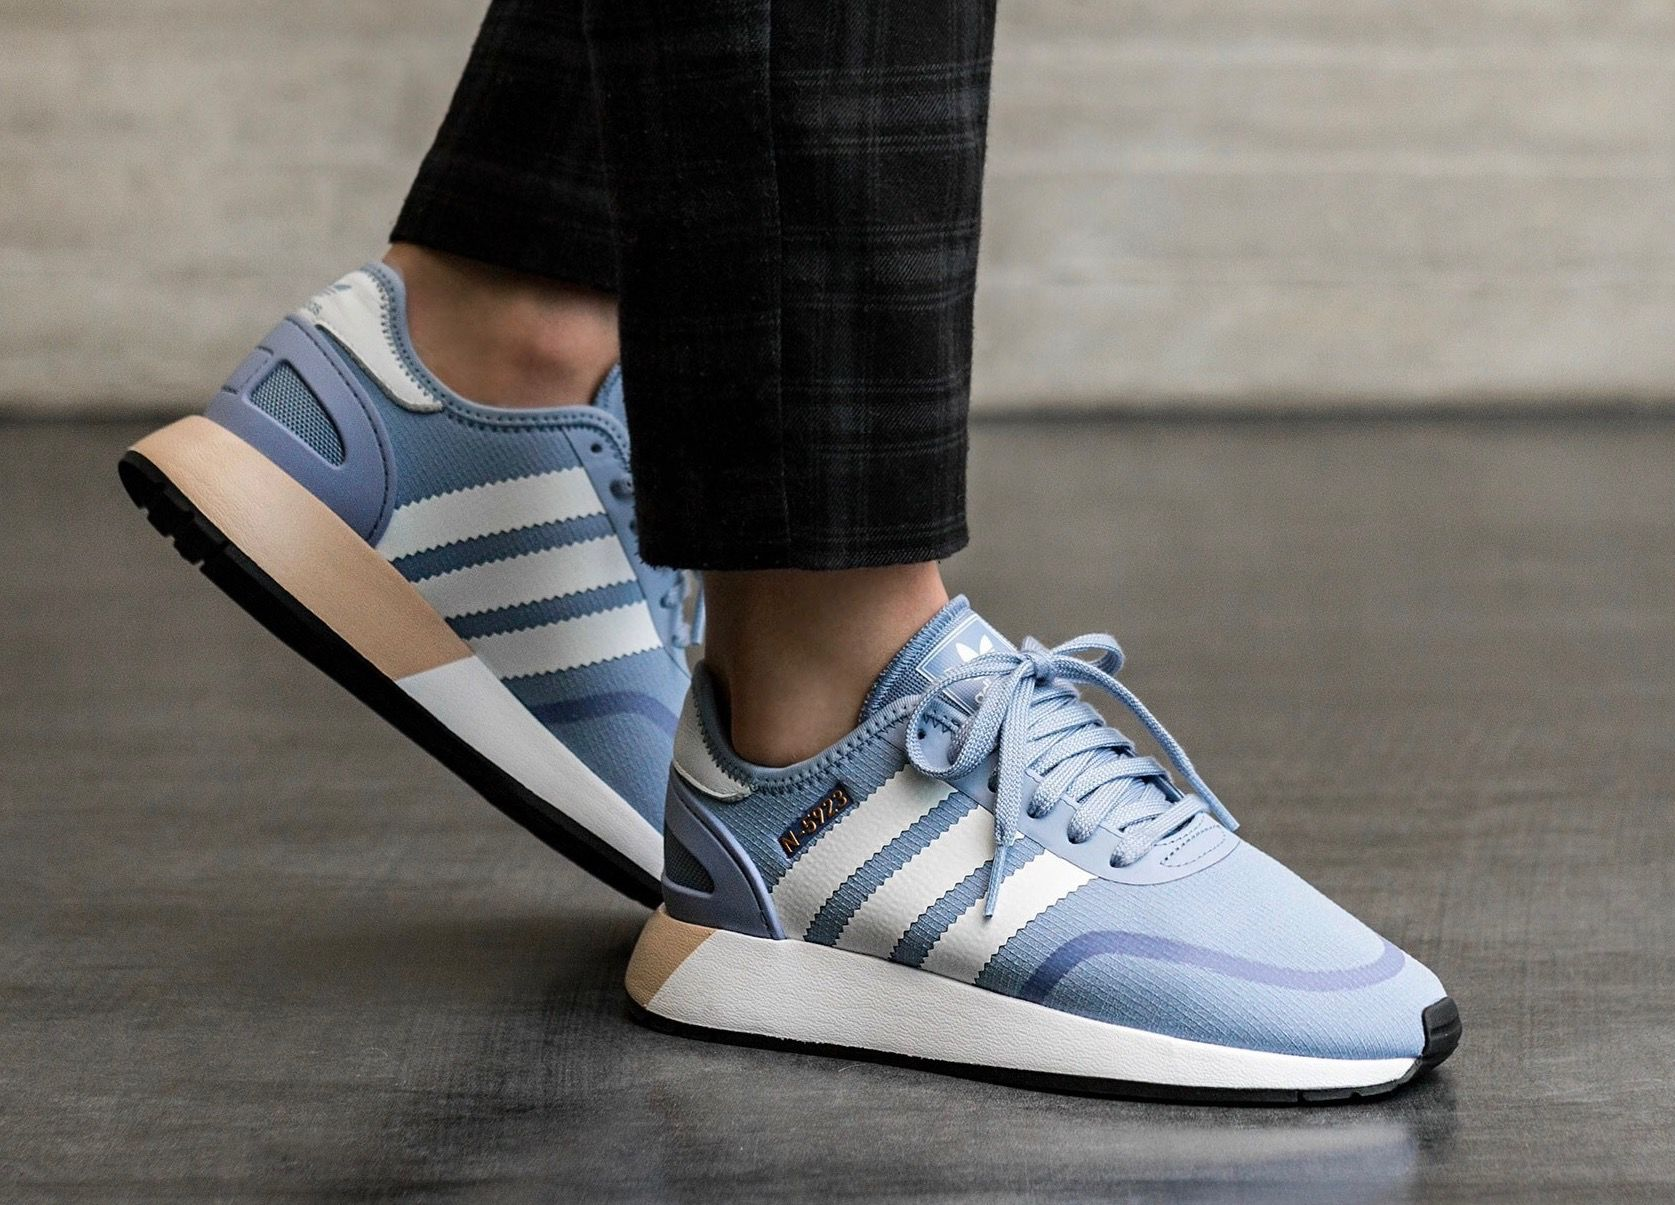 adidas Originals N 5923: Baby Blue | Shoes | Sneakers  großer Rabatt